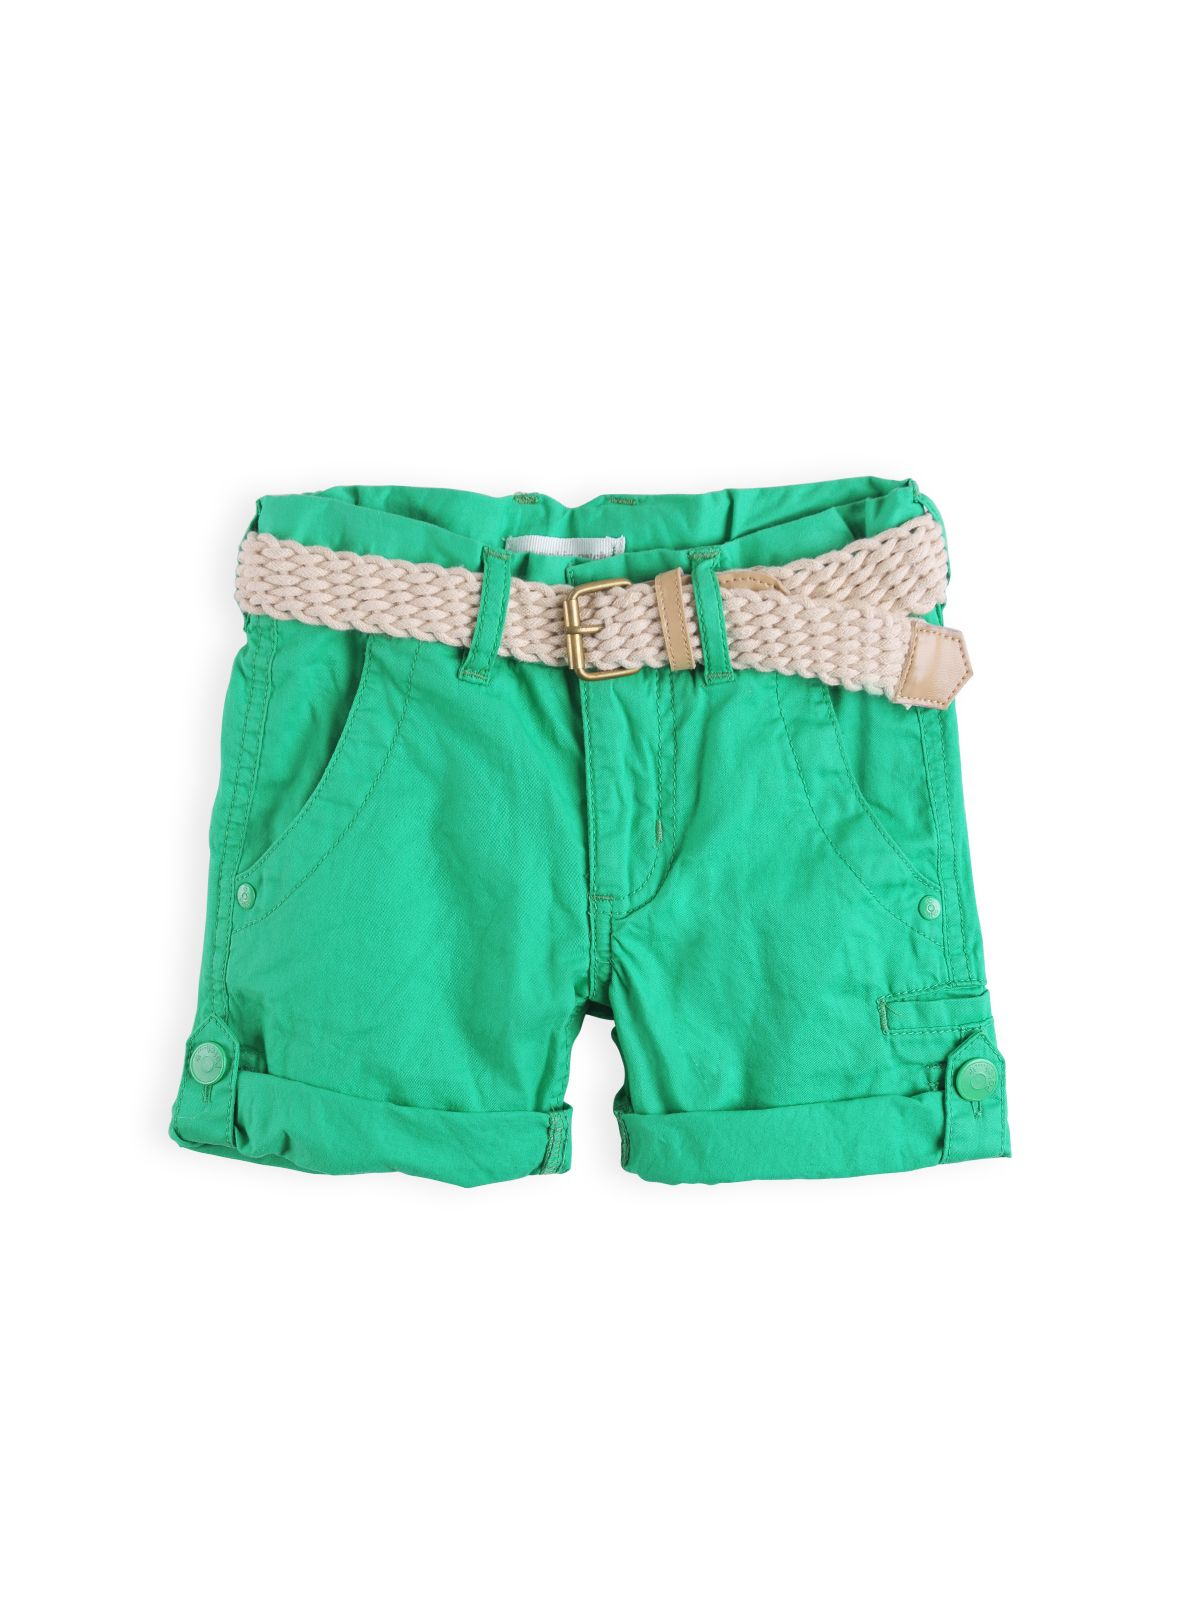 Boys chino shorts with belt